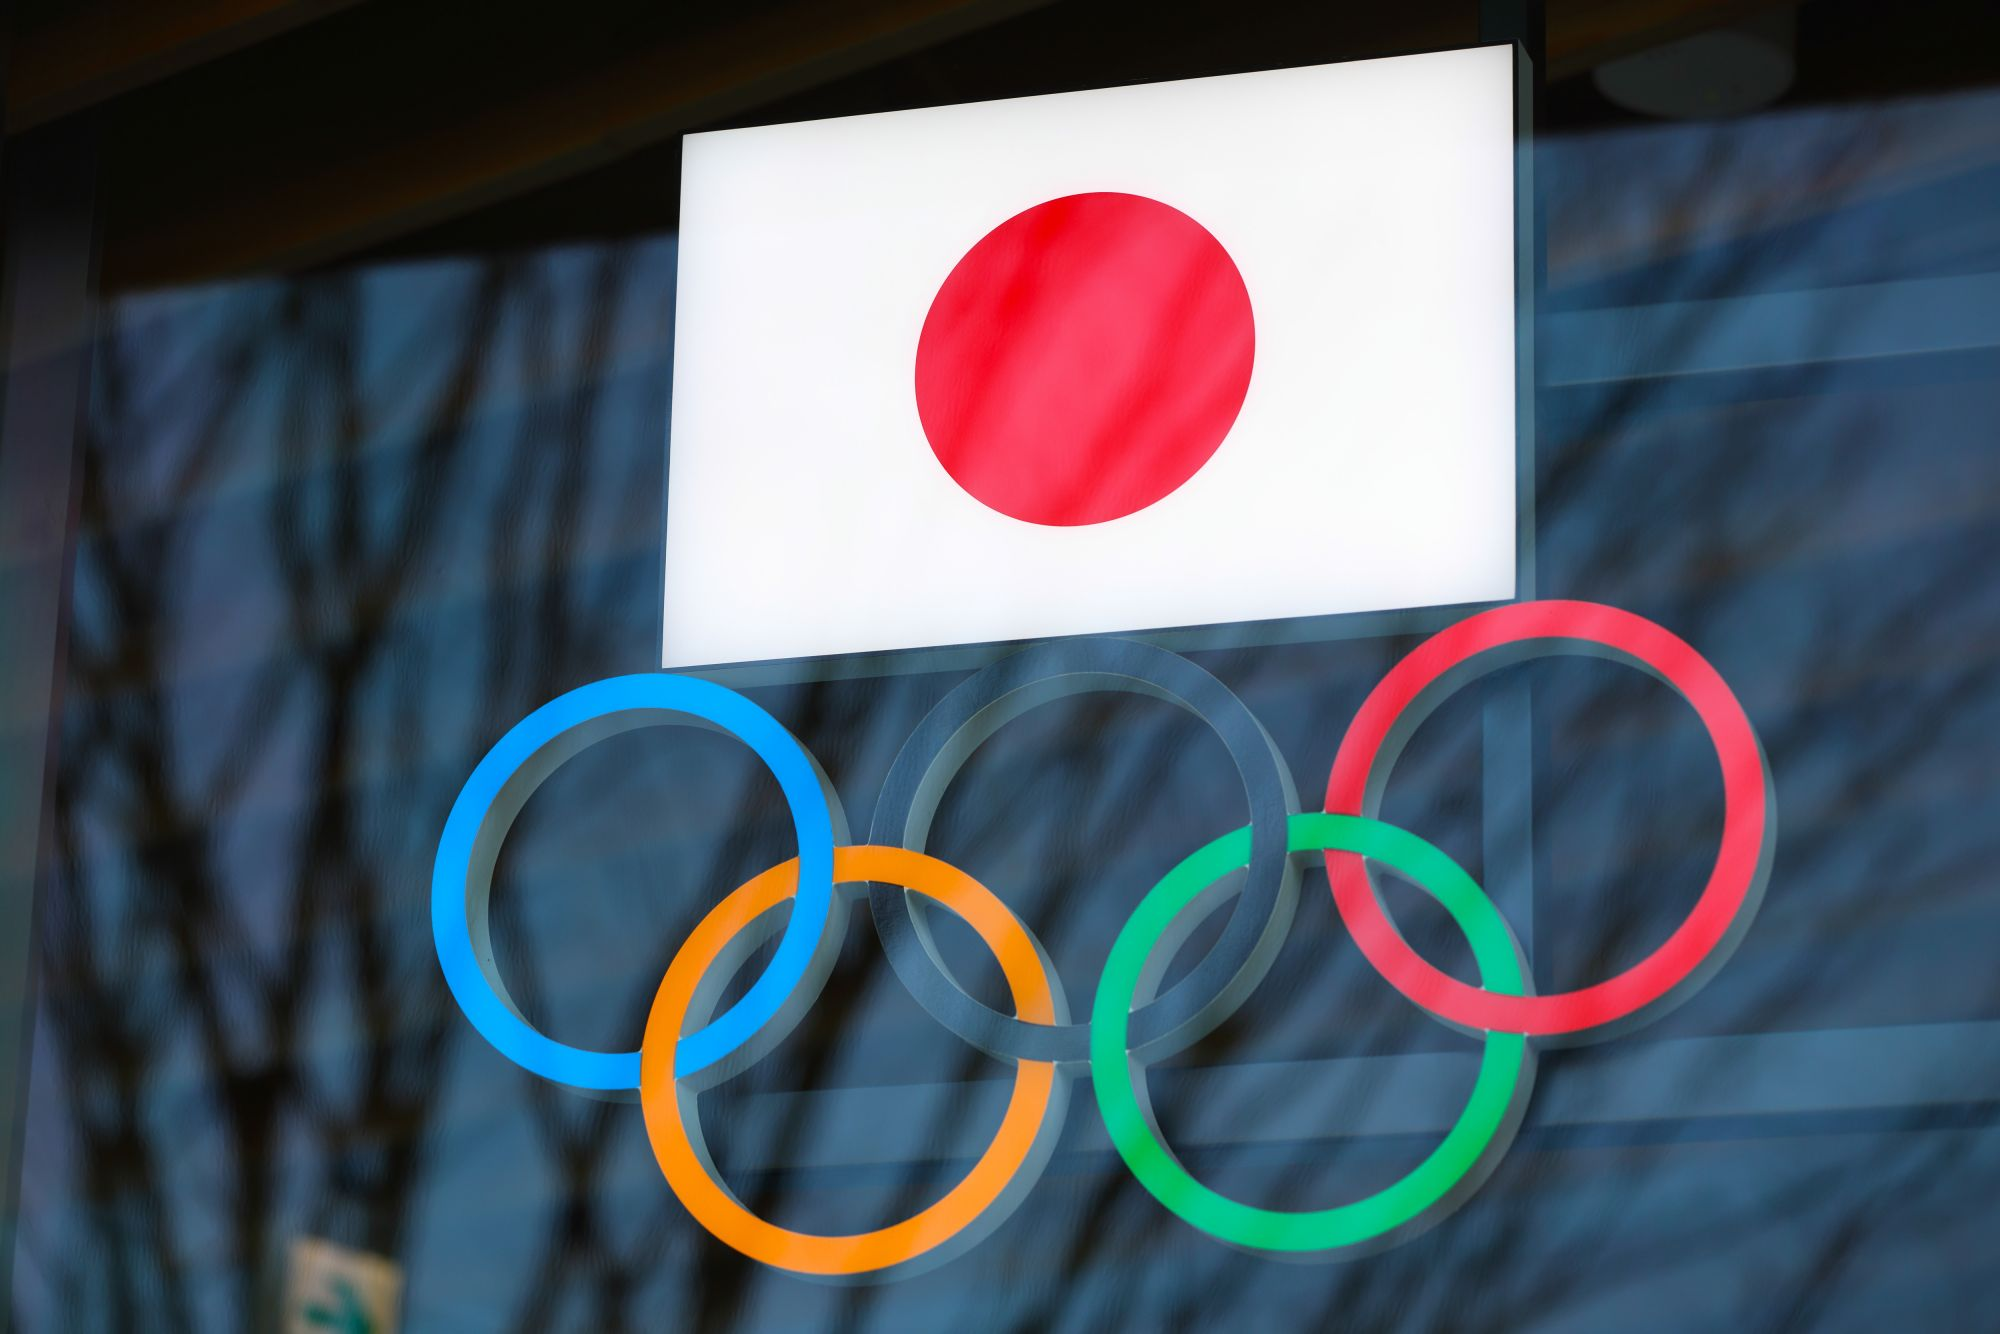 Tokyo Olympics To Allow Up To 10,000 Spectators In Venues